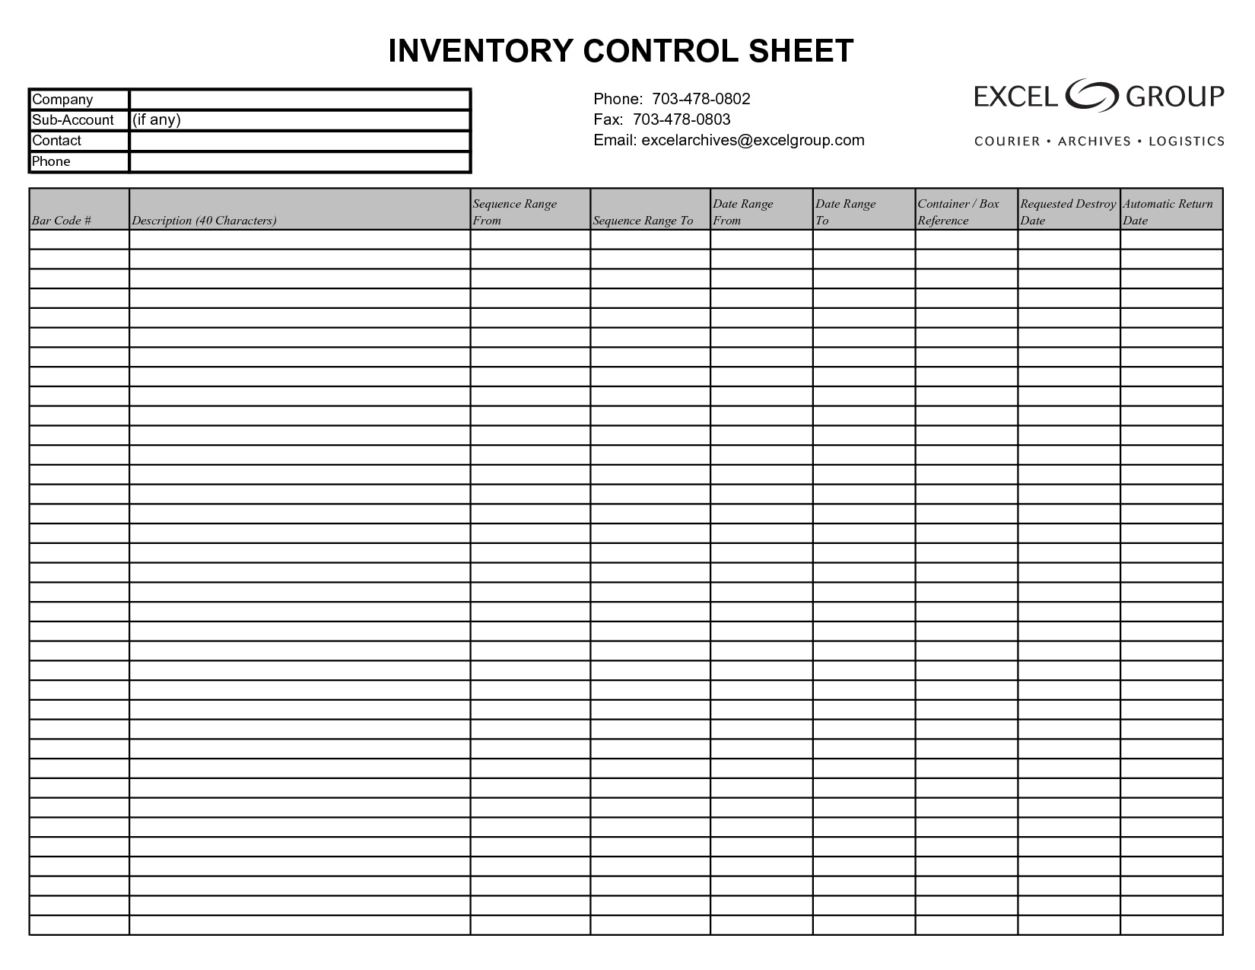 Inventory Spreadsheet Template Excel Product Tracking | My Intended For Examples Of Inventory Spreadsheets